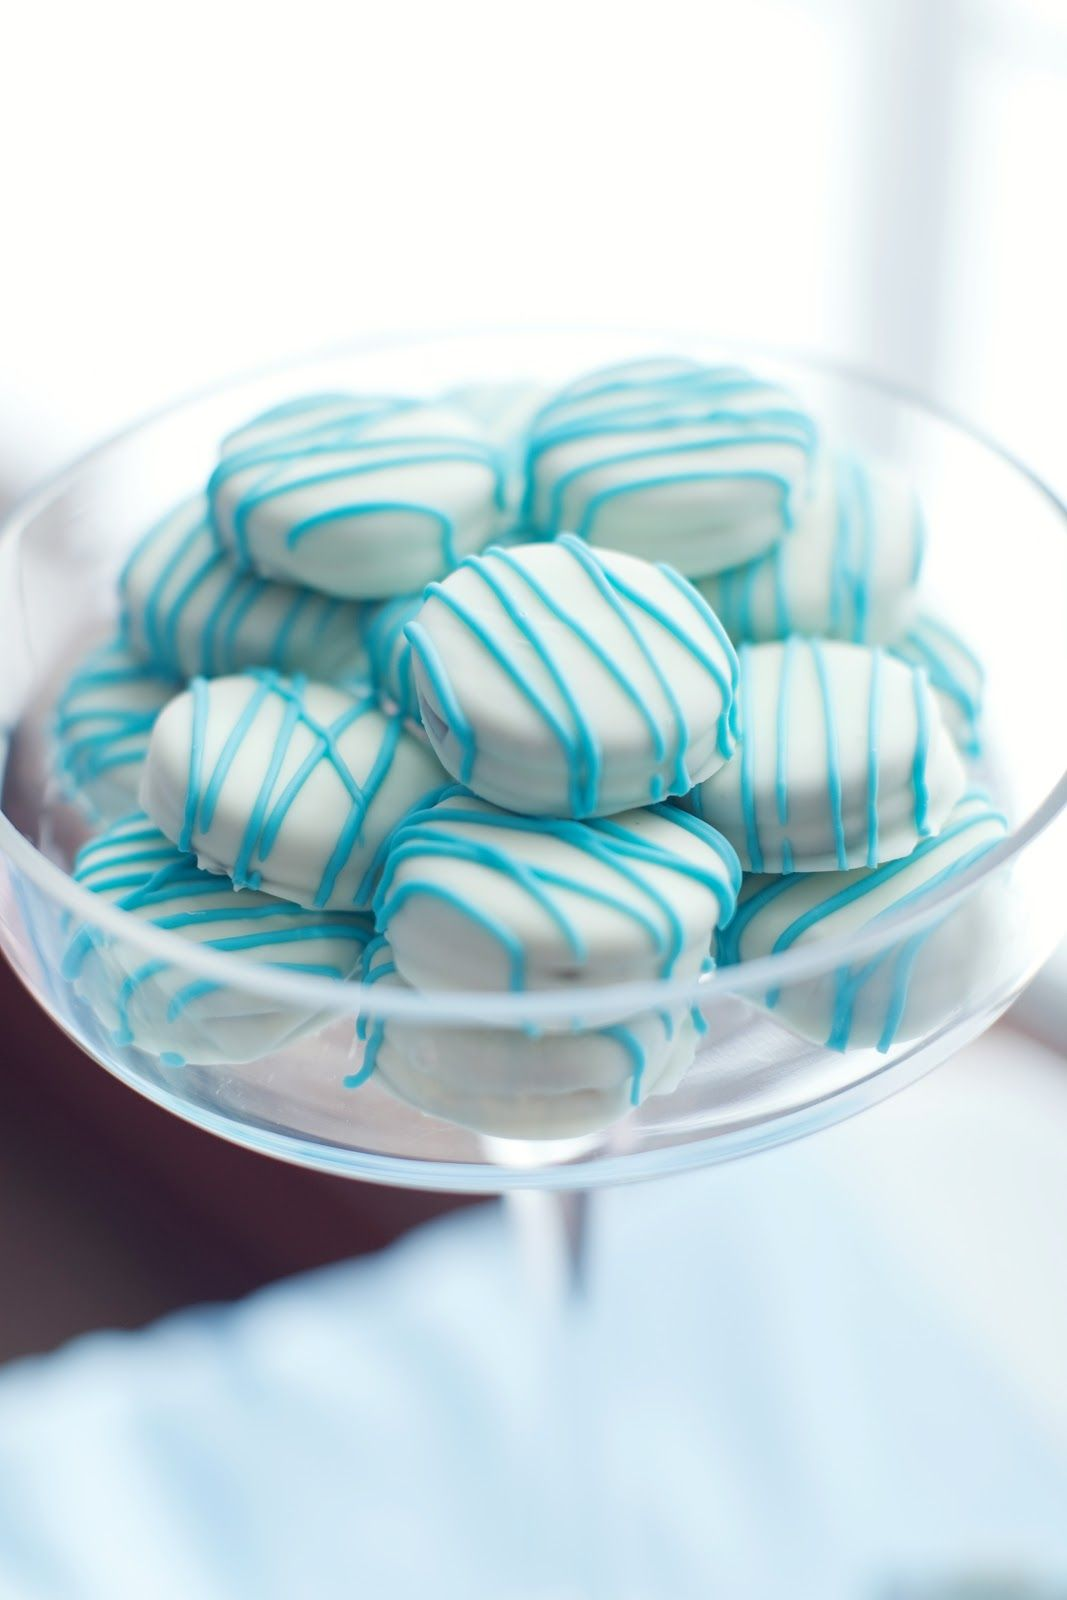 Chocolate Covered Oreos Food For Party Ideas Chocolate Covered